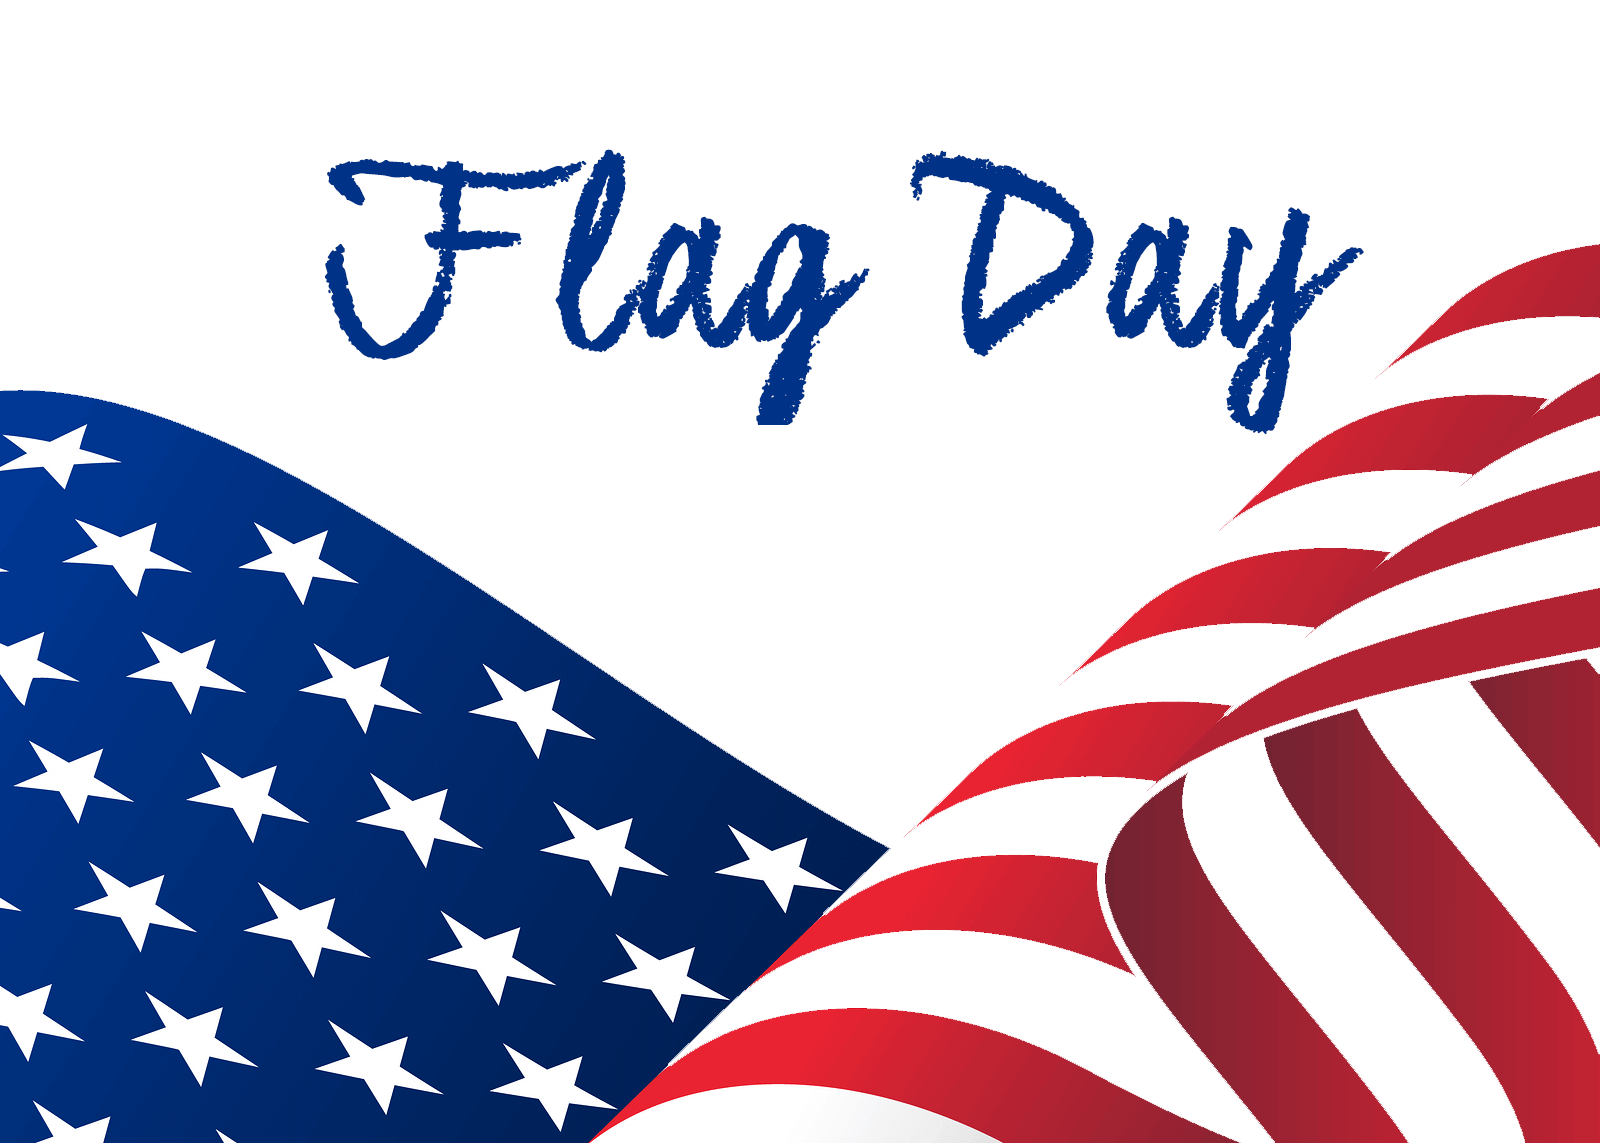 Flag Day Fun Facts Https Printablecalendar Pictures Flag Day History Facts Celebrate Flag Day Images Holiday Calendar Holidays And Events Calendar Template